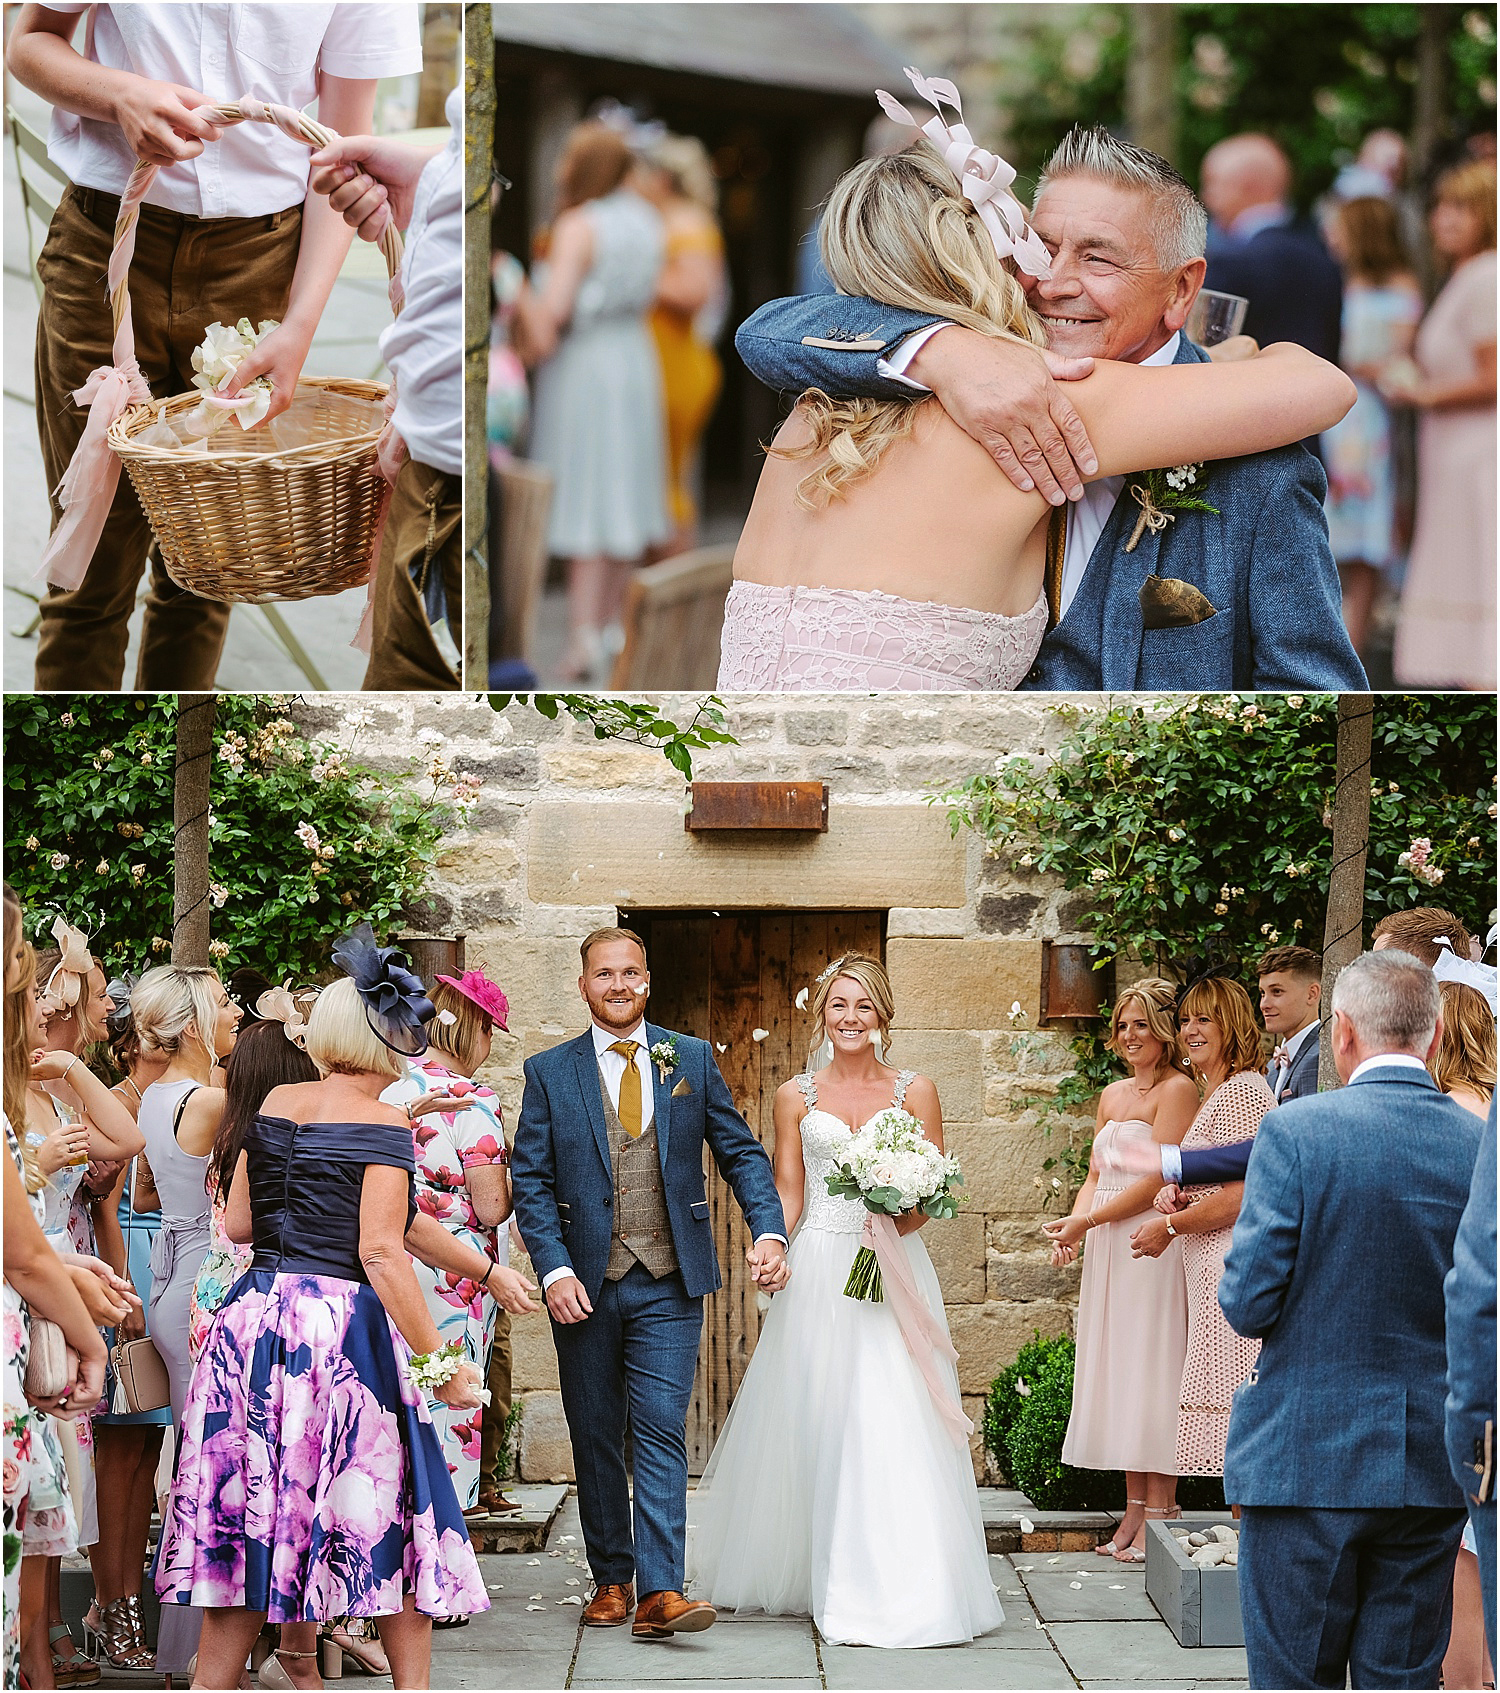 Wedding at Healey Barn - wedding photography by www.2tonephotography.co.uk 050.jpg